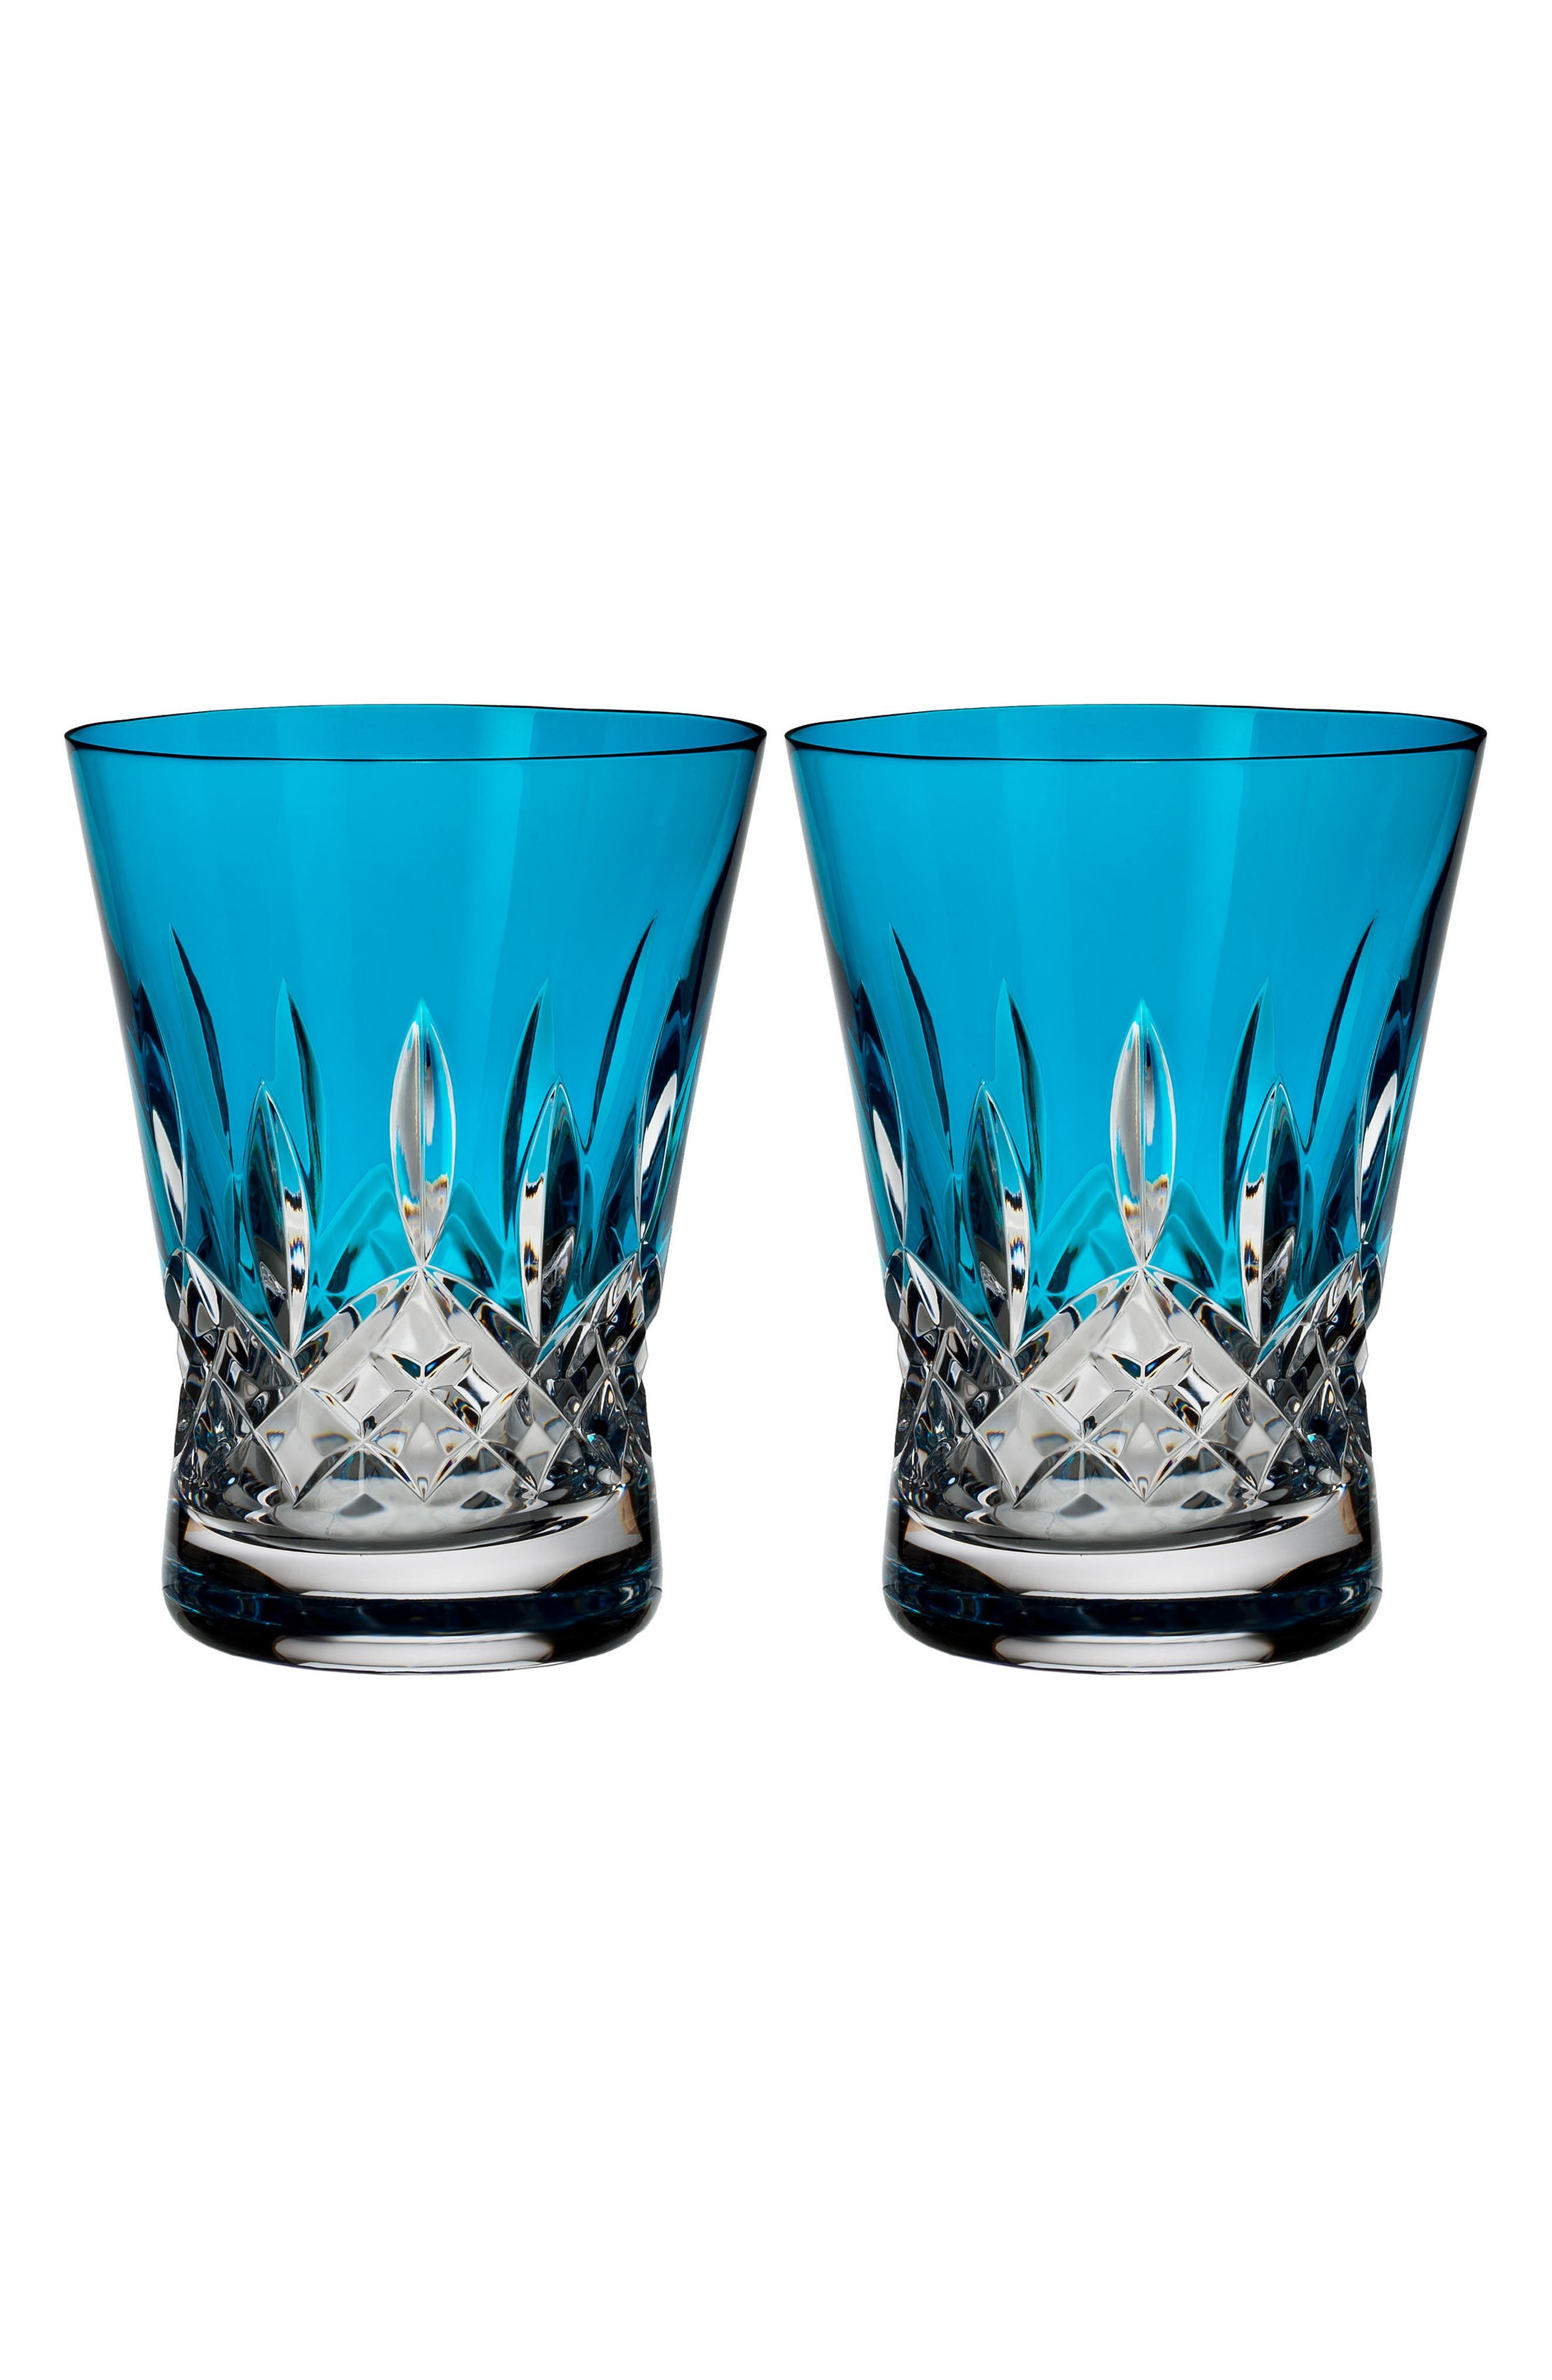 Waterford Lismore Pops Set of 2 Aqua Lead Crystal Double Old Fashioned Glasses